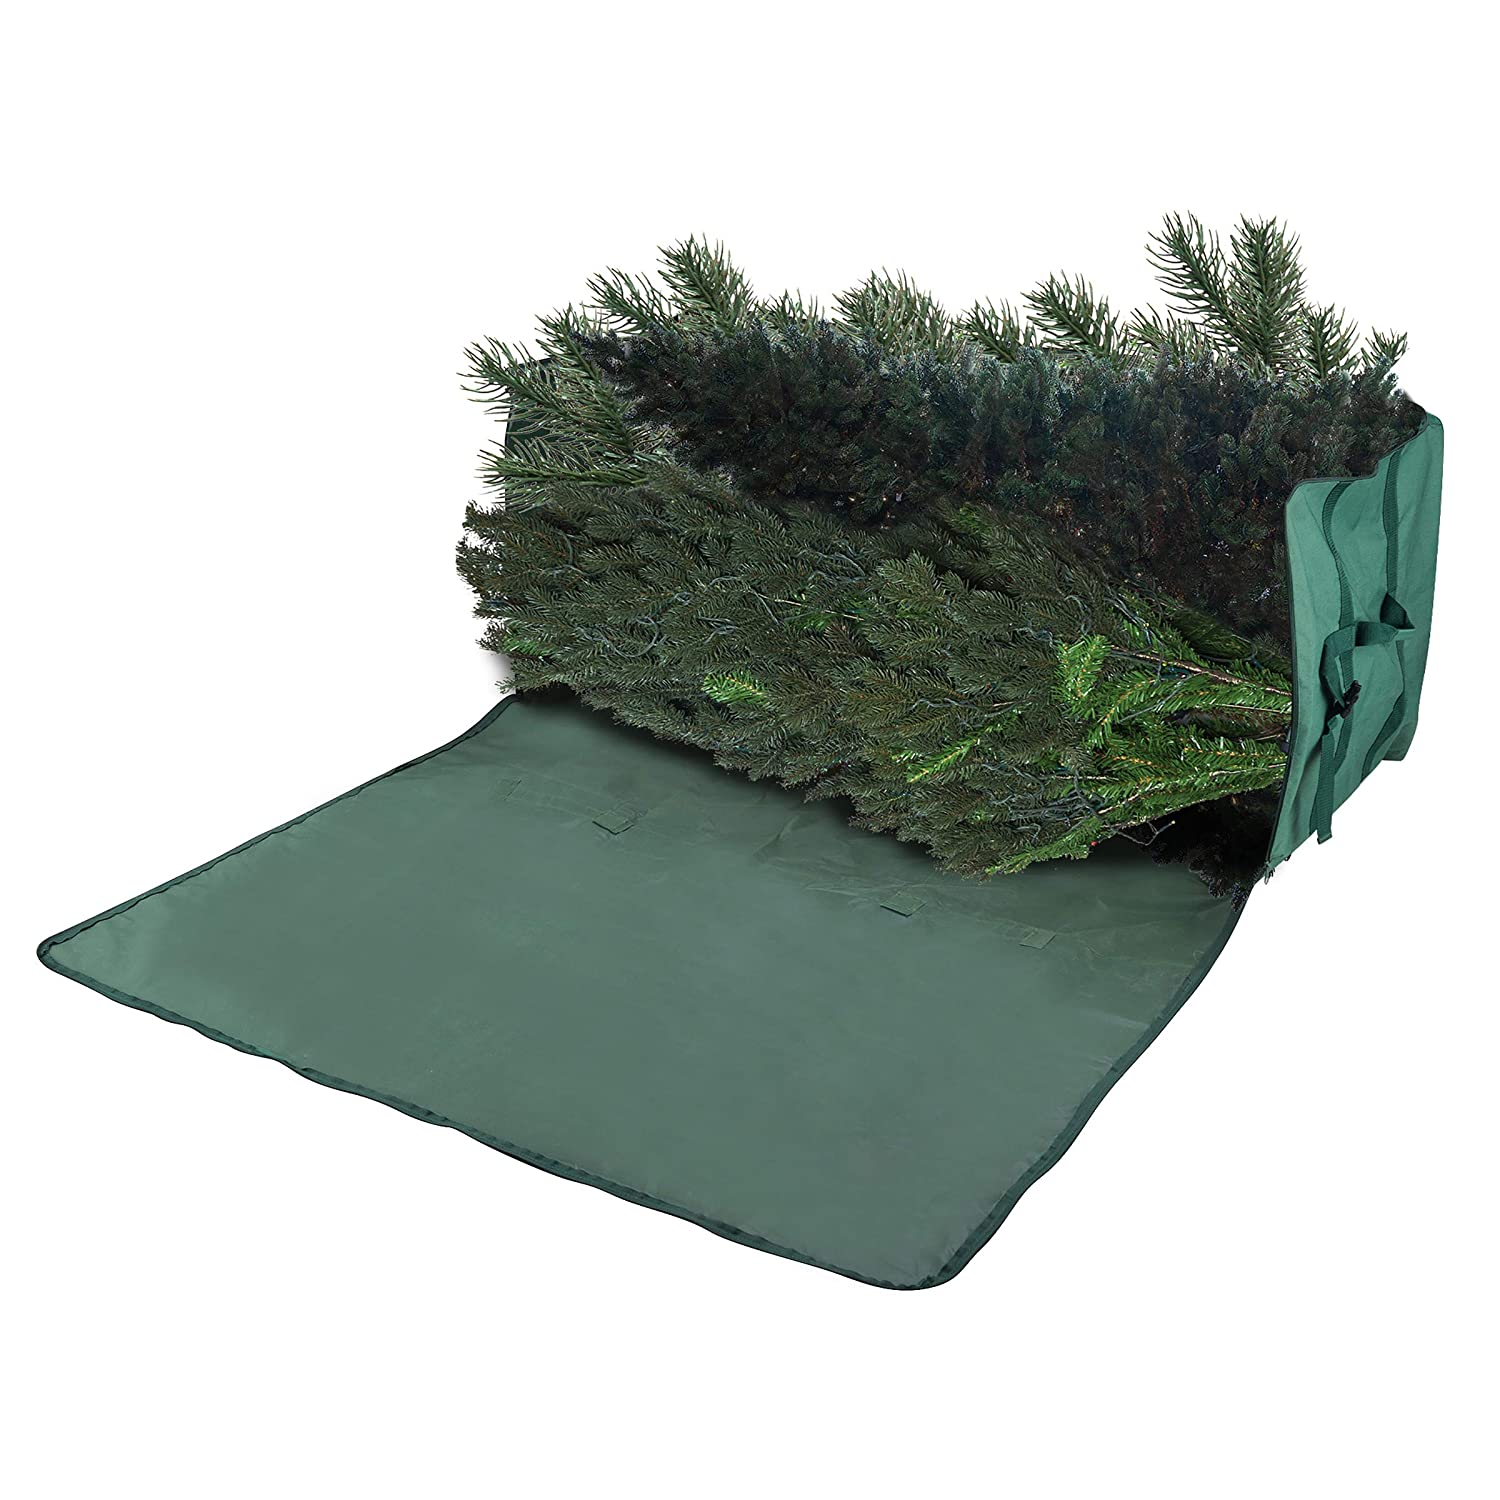 Amazon.com  Elf Stor 83-DT5030 Heavy Duty Canvas Christmas Storage Bag  Large for 9 Foot Tree 39786d32f1e1c